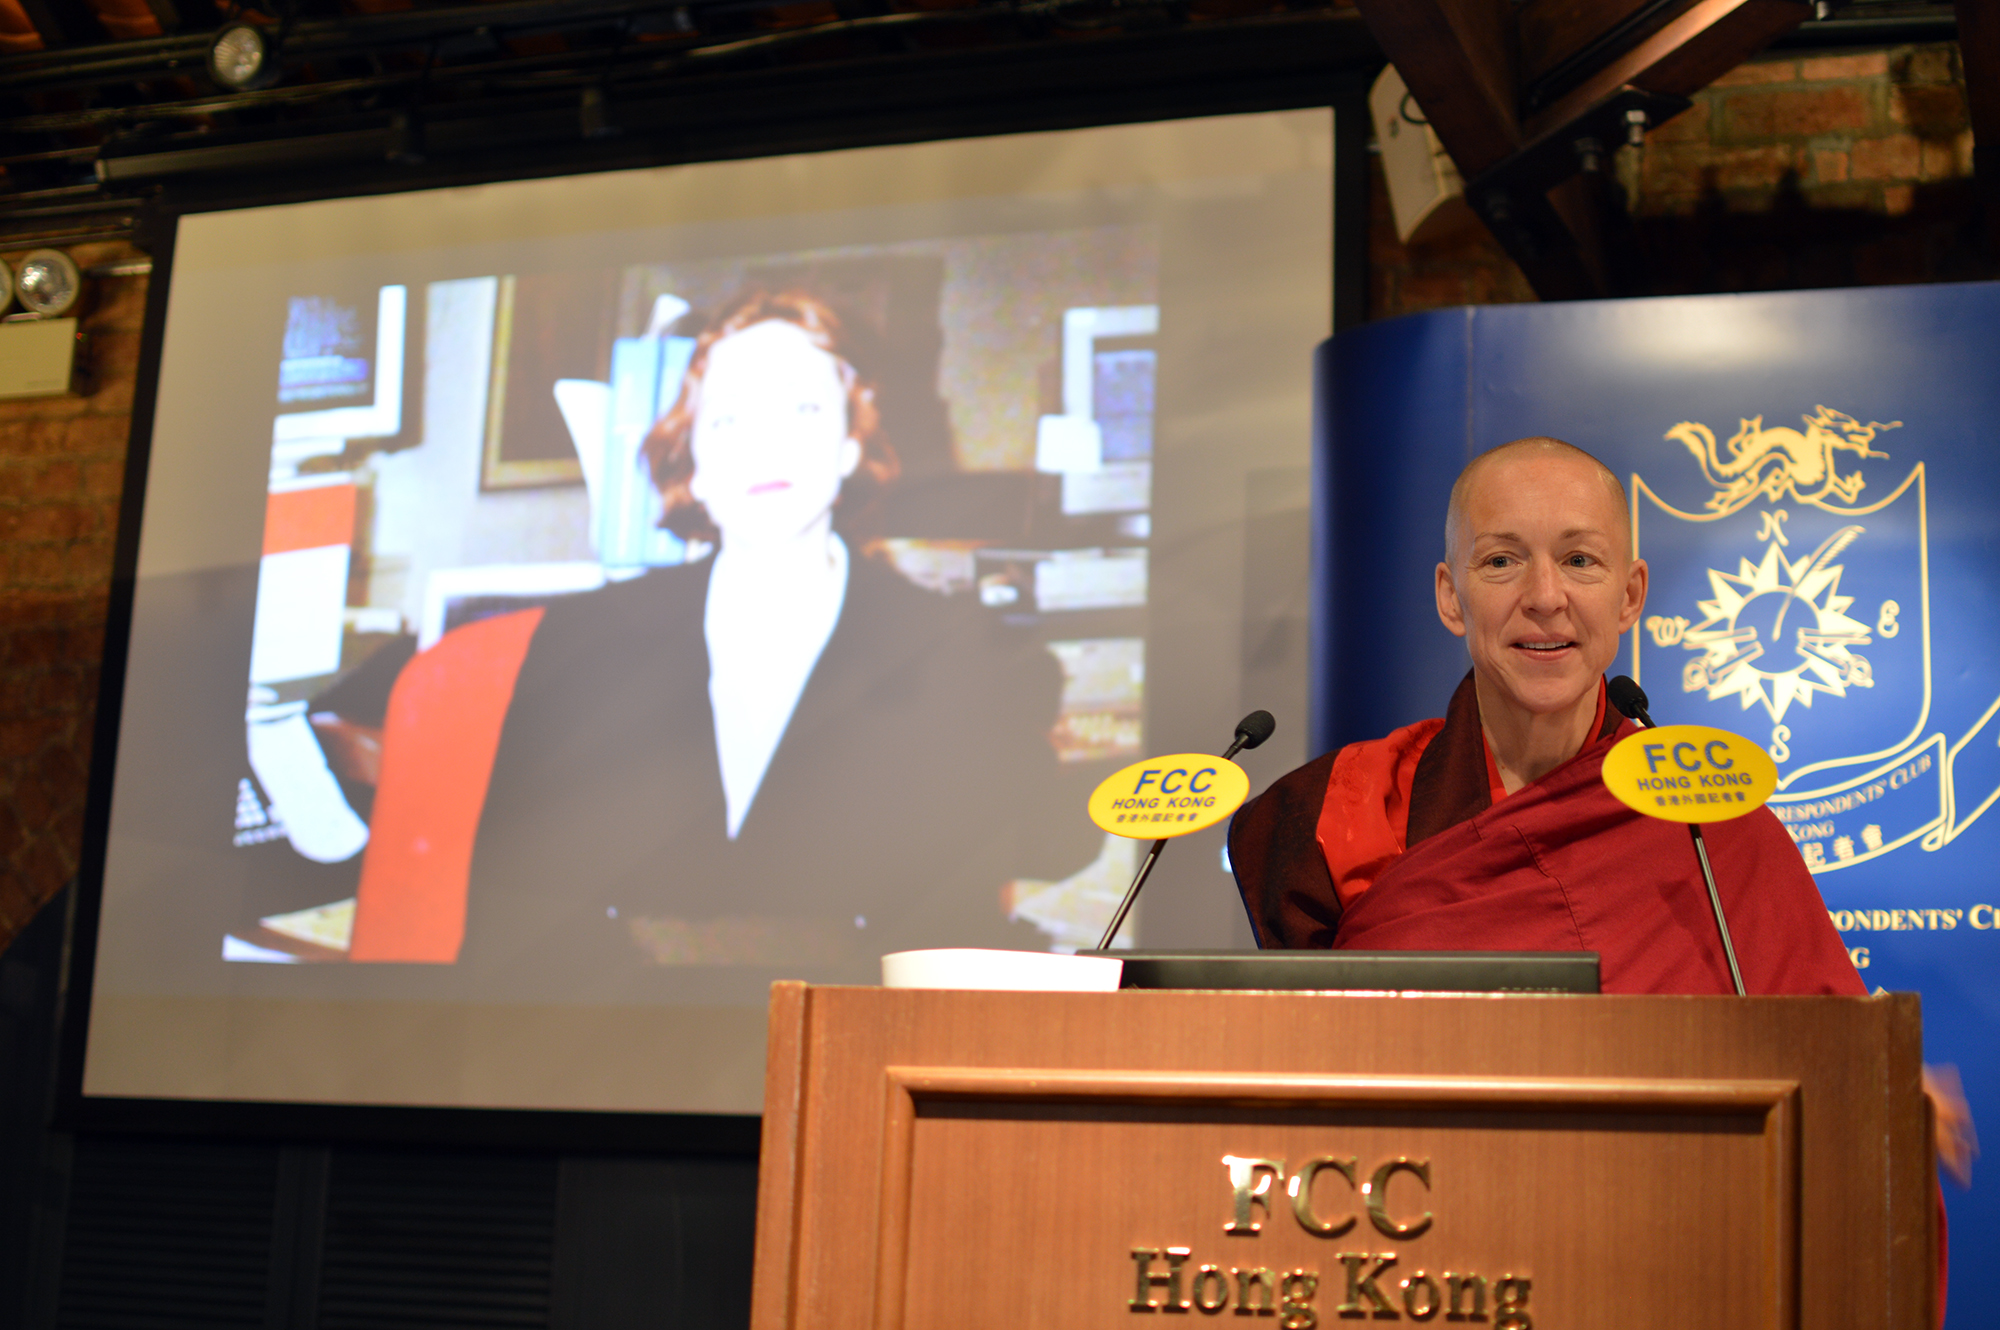 Emma Slade, standing in front of a photo from her days as a high-flying banker, told FCC members about her journey to becoming a Buddhist nun. Photo: Sarah Graham/FCC